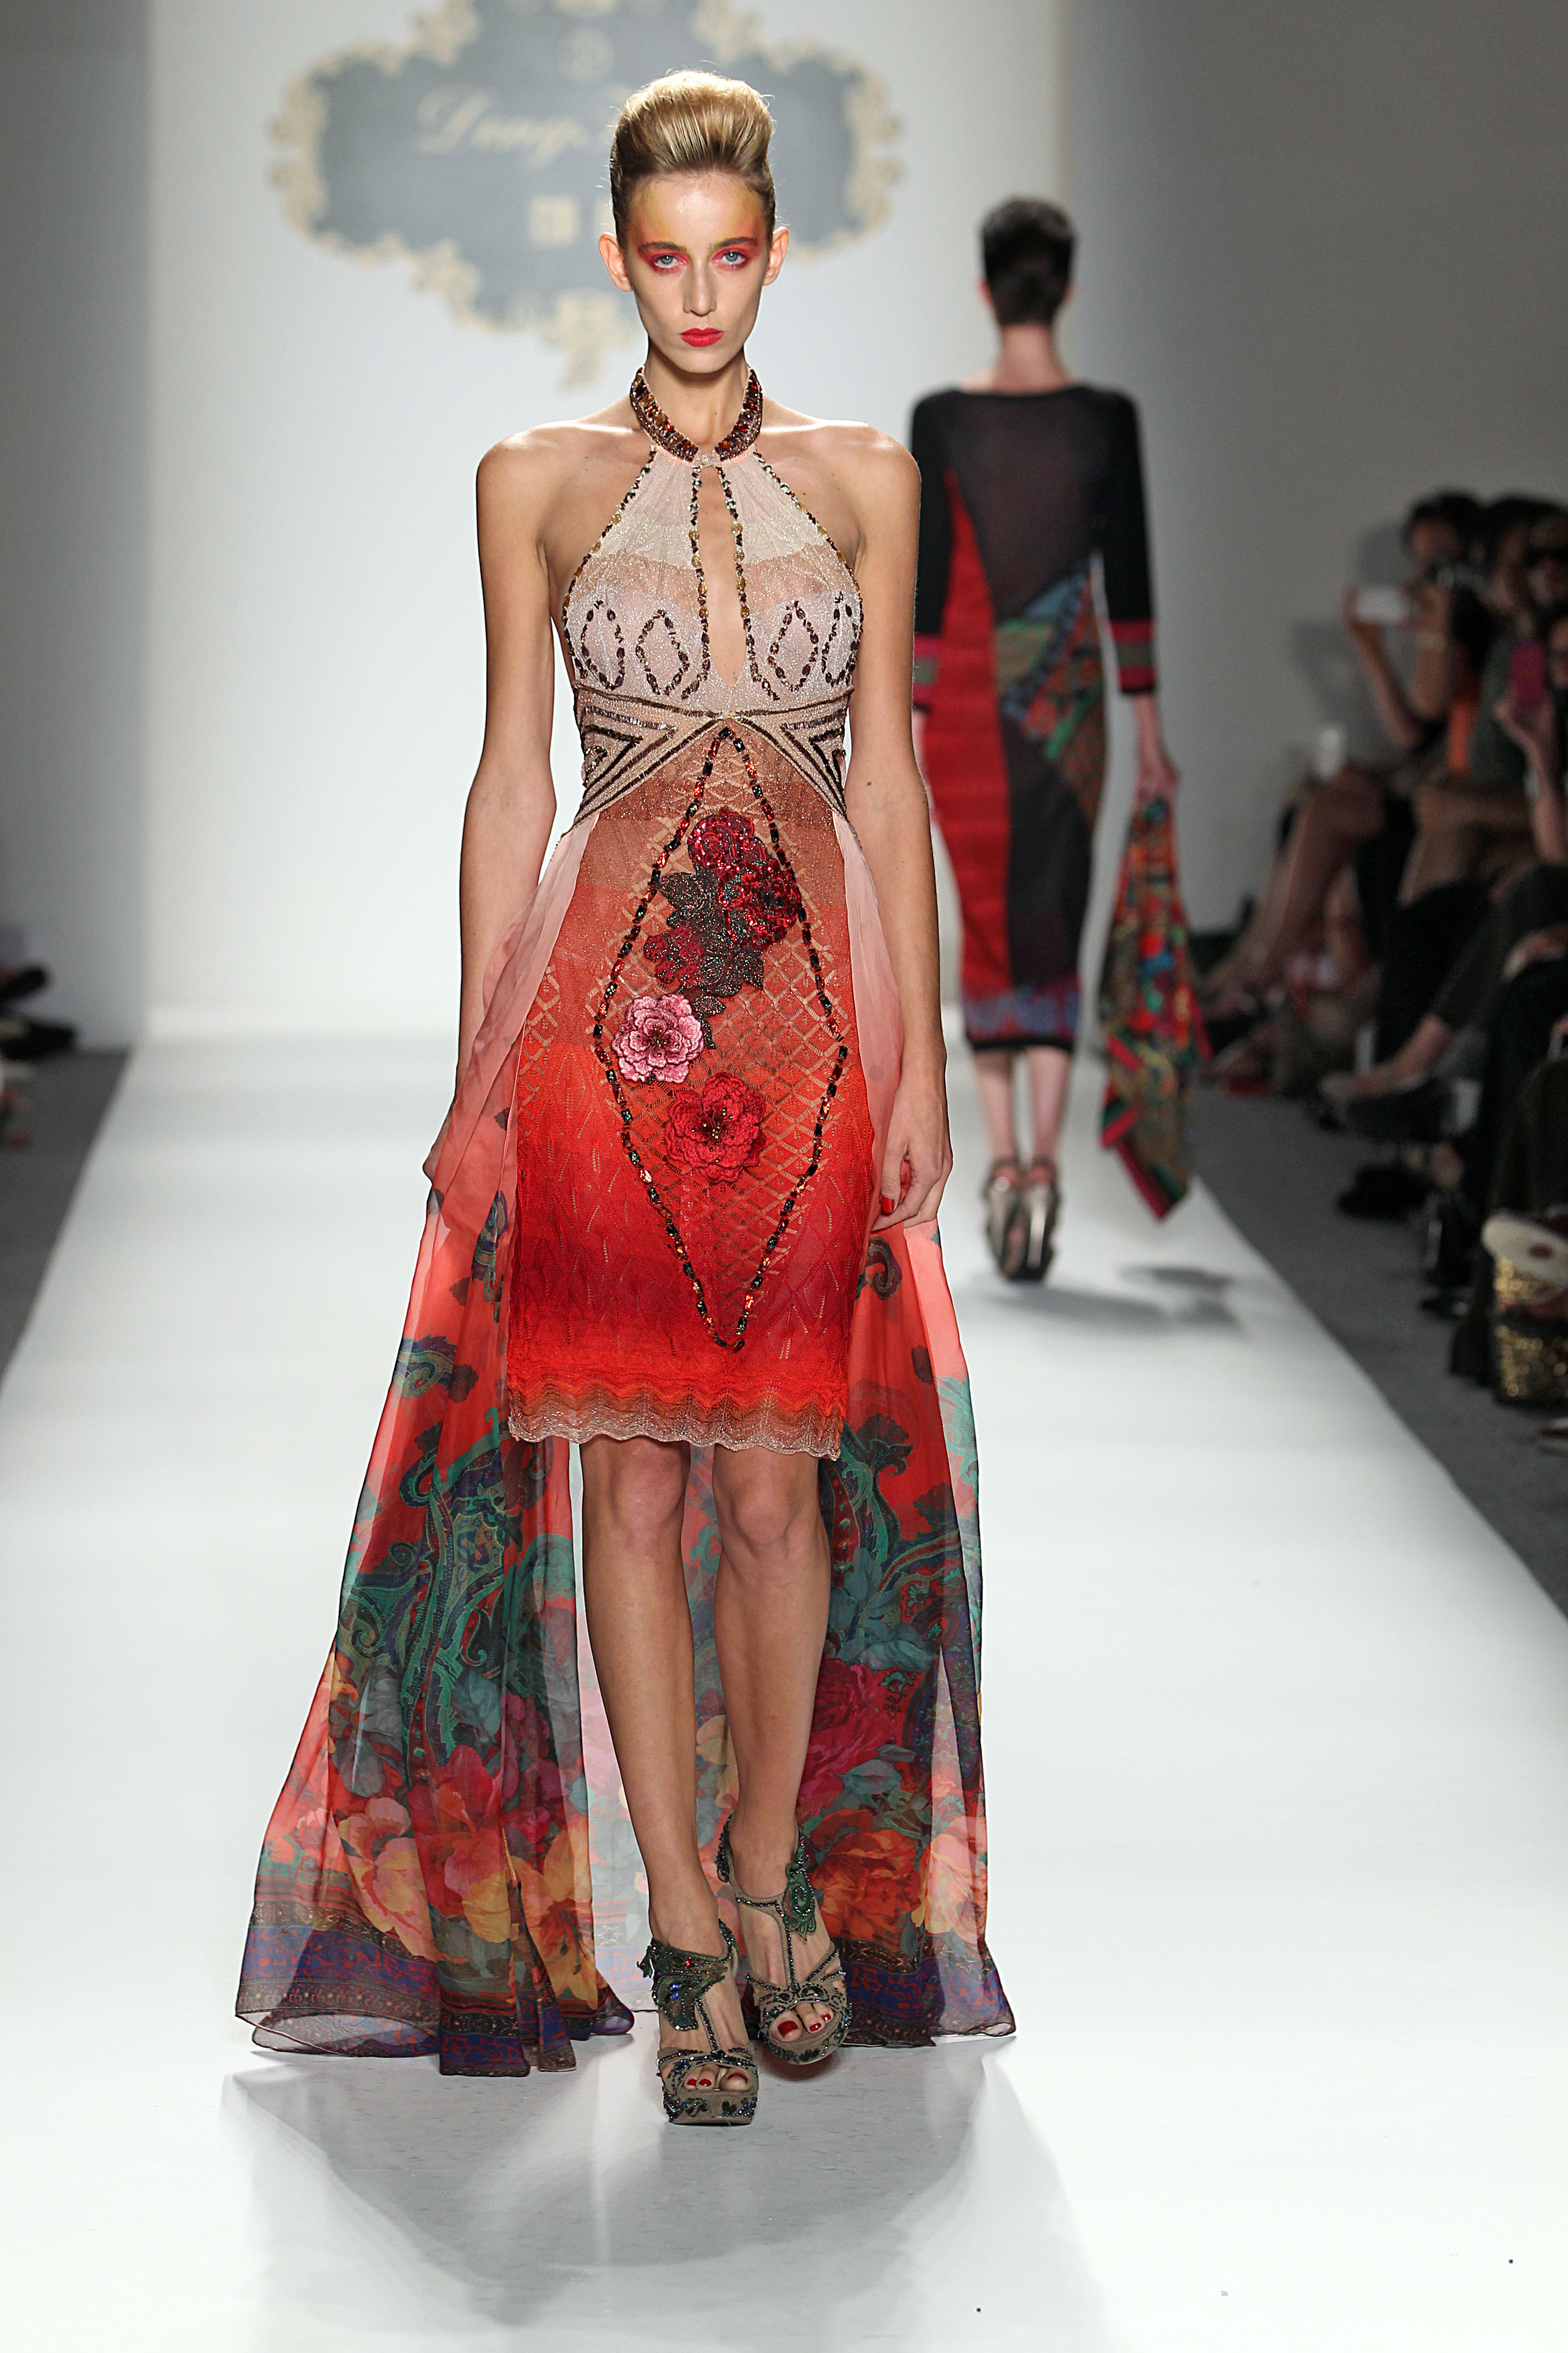 Fashion Shenzhen, Collection #2: Denghao Is Exotic And